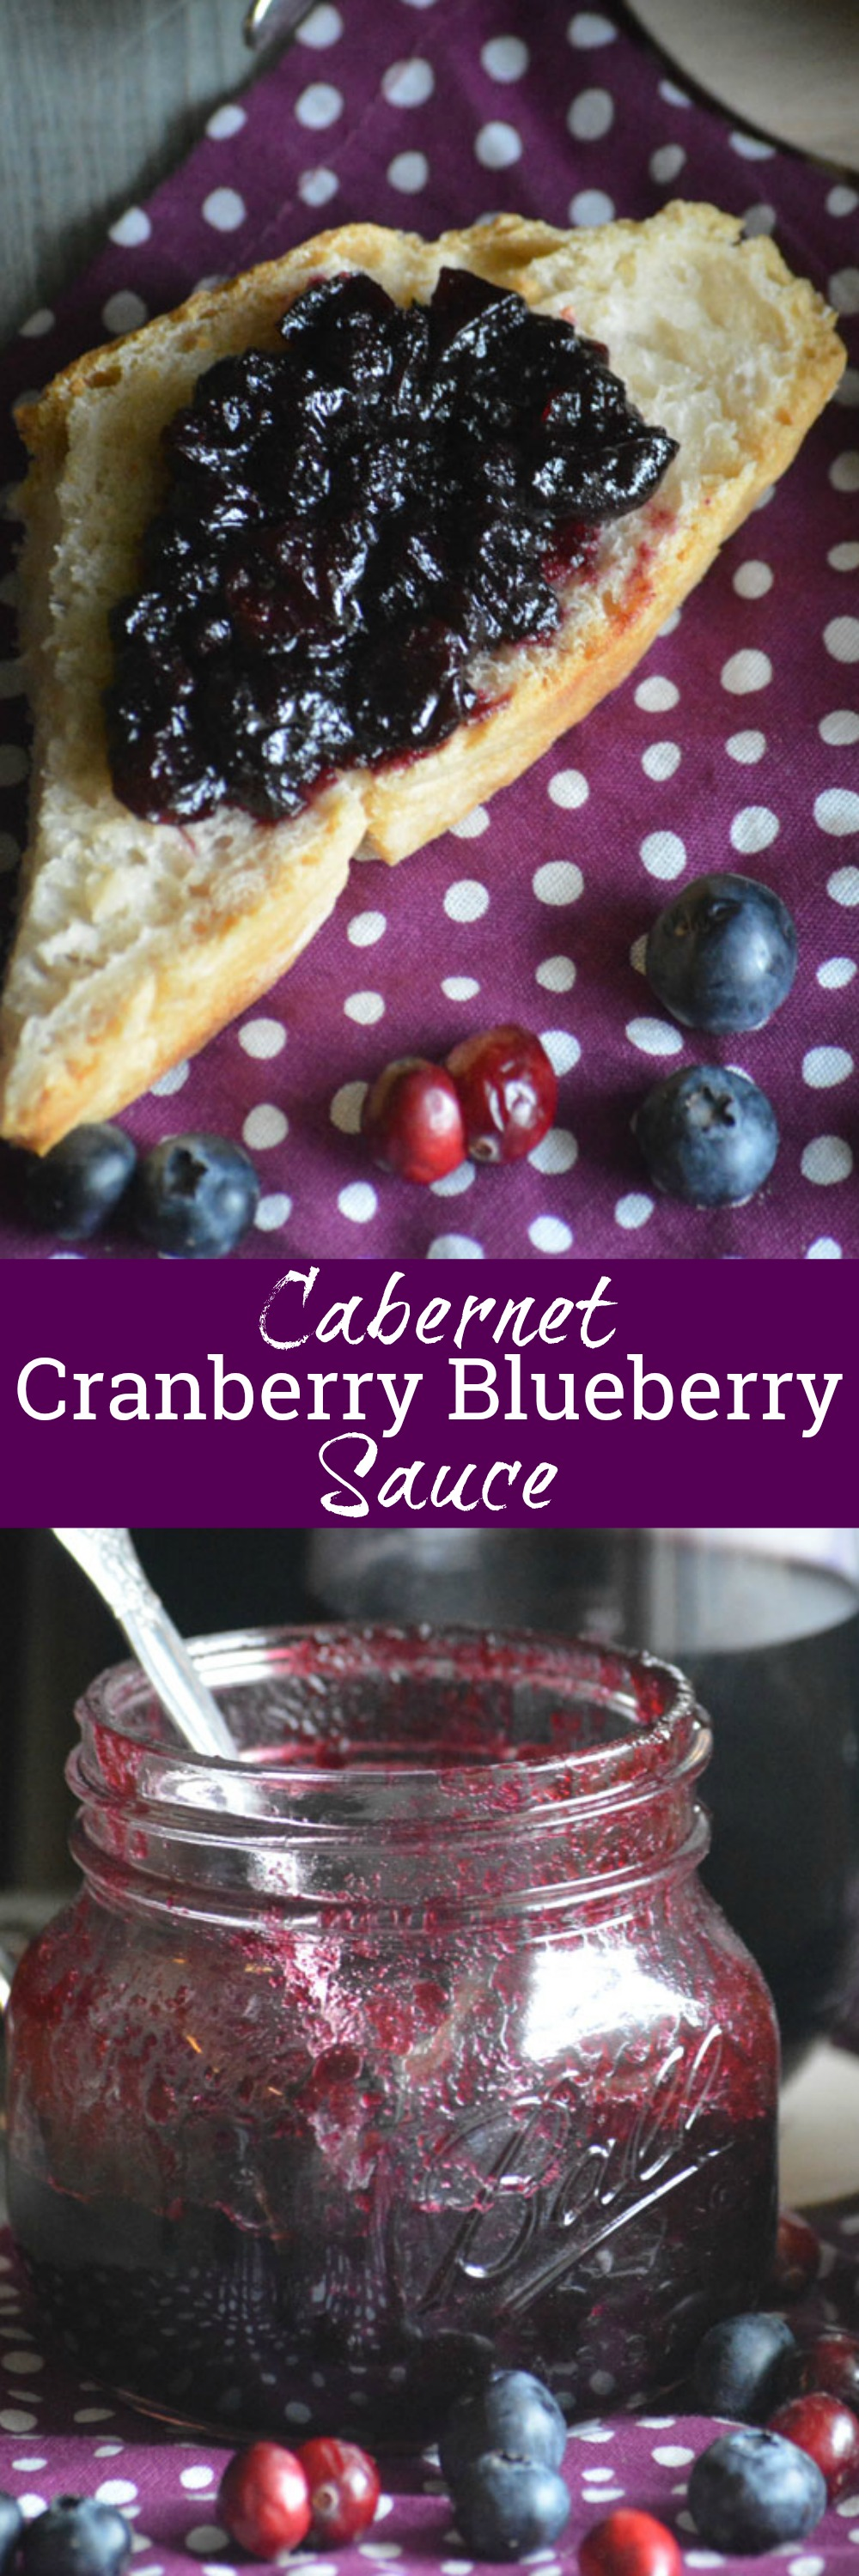 A thick sauce, somewhere in between jam & jelly, thisCabernet Cranberry and Blueberry Sauce is a delicious addition to your holiday meals. Keep any extras on hand to slather on bread or toast for a simple breakfast or snack that's bursting with fresh sweet berry flavor and a hint of wine.